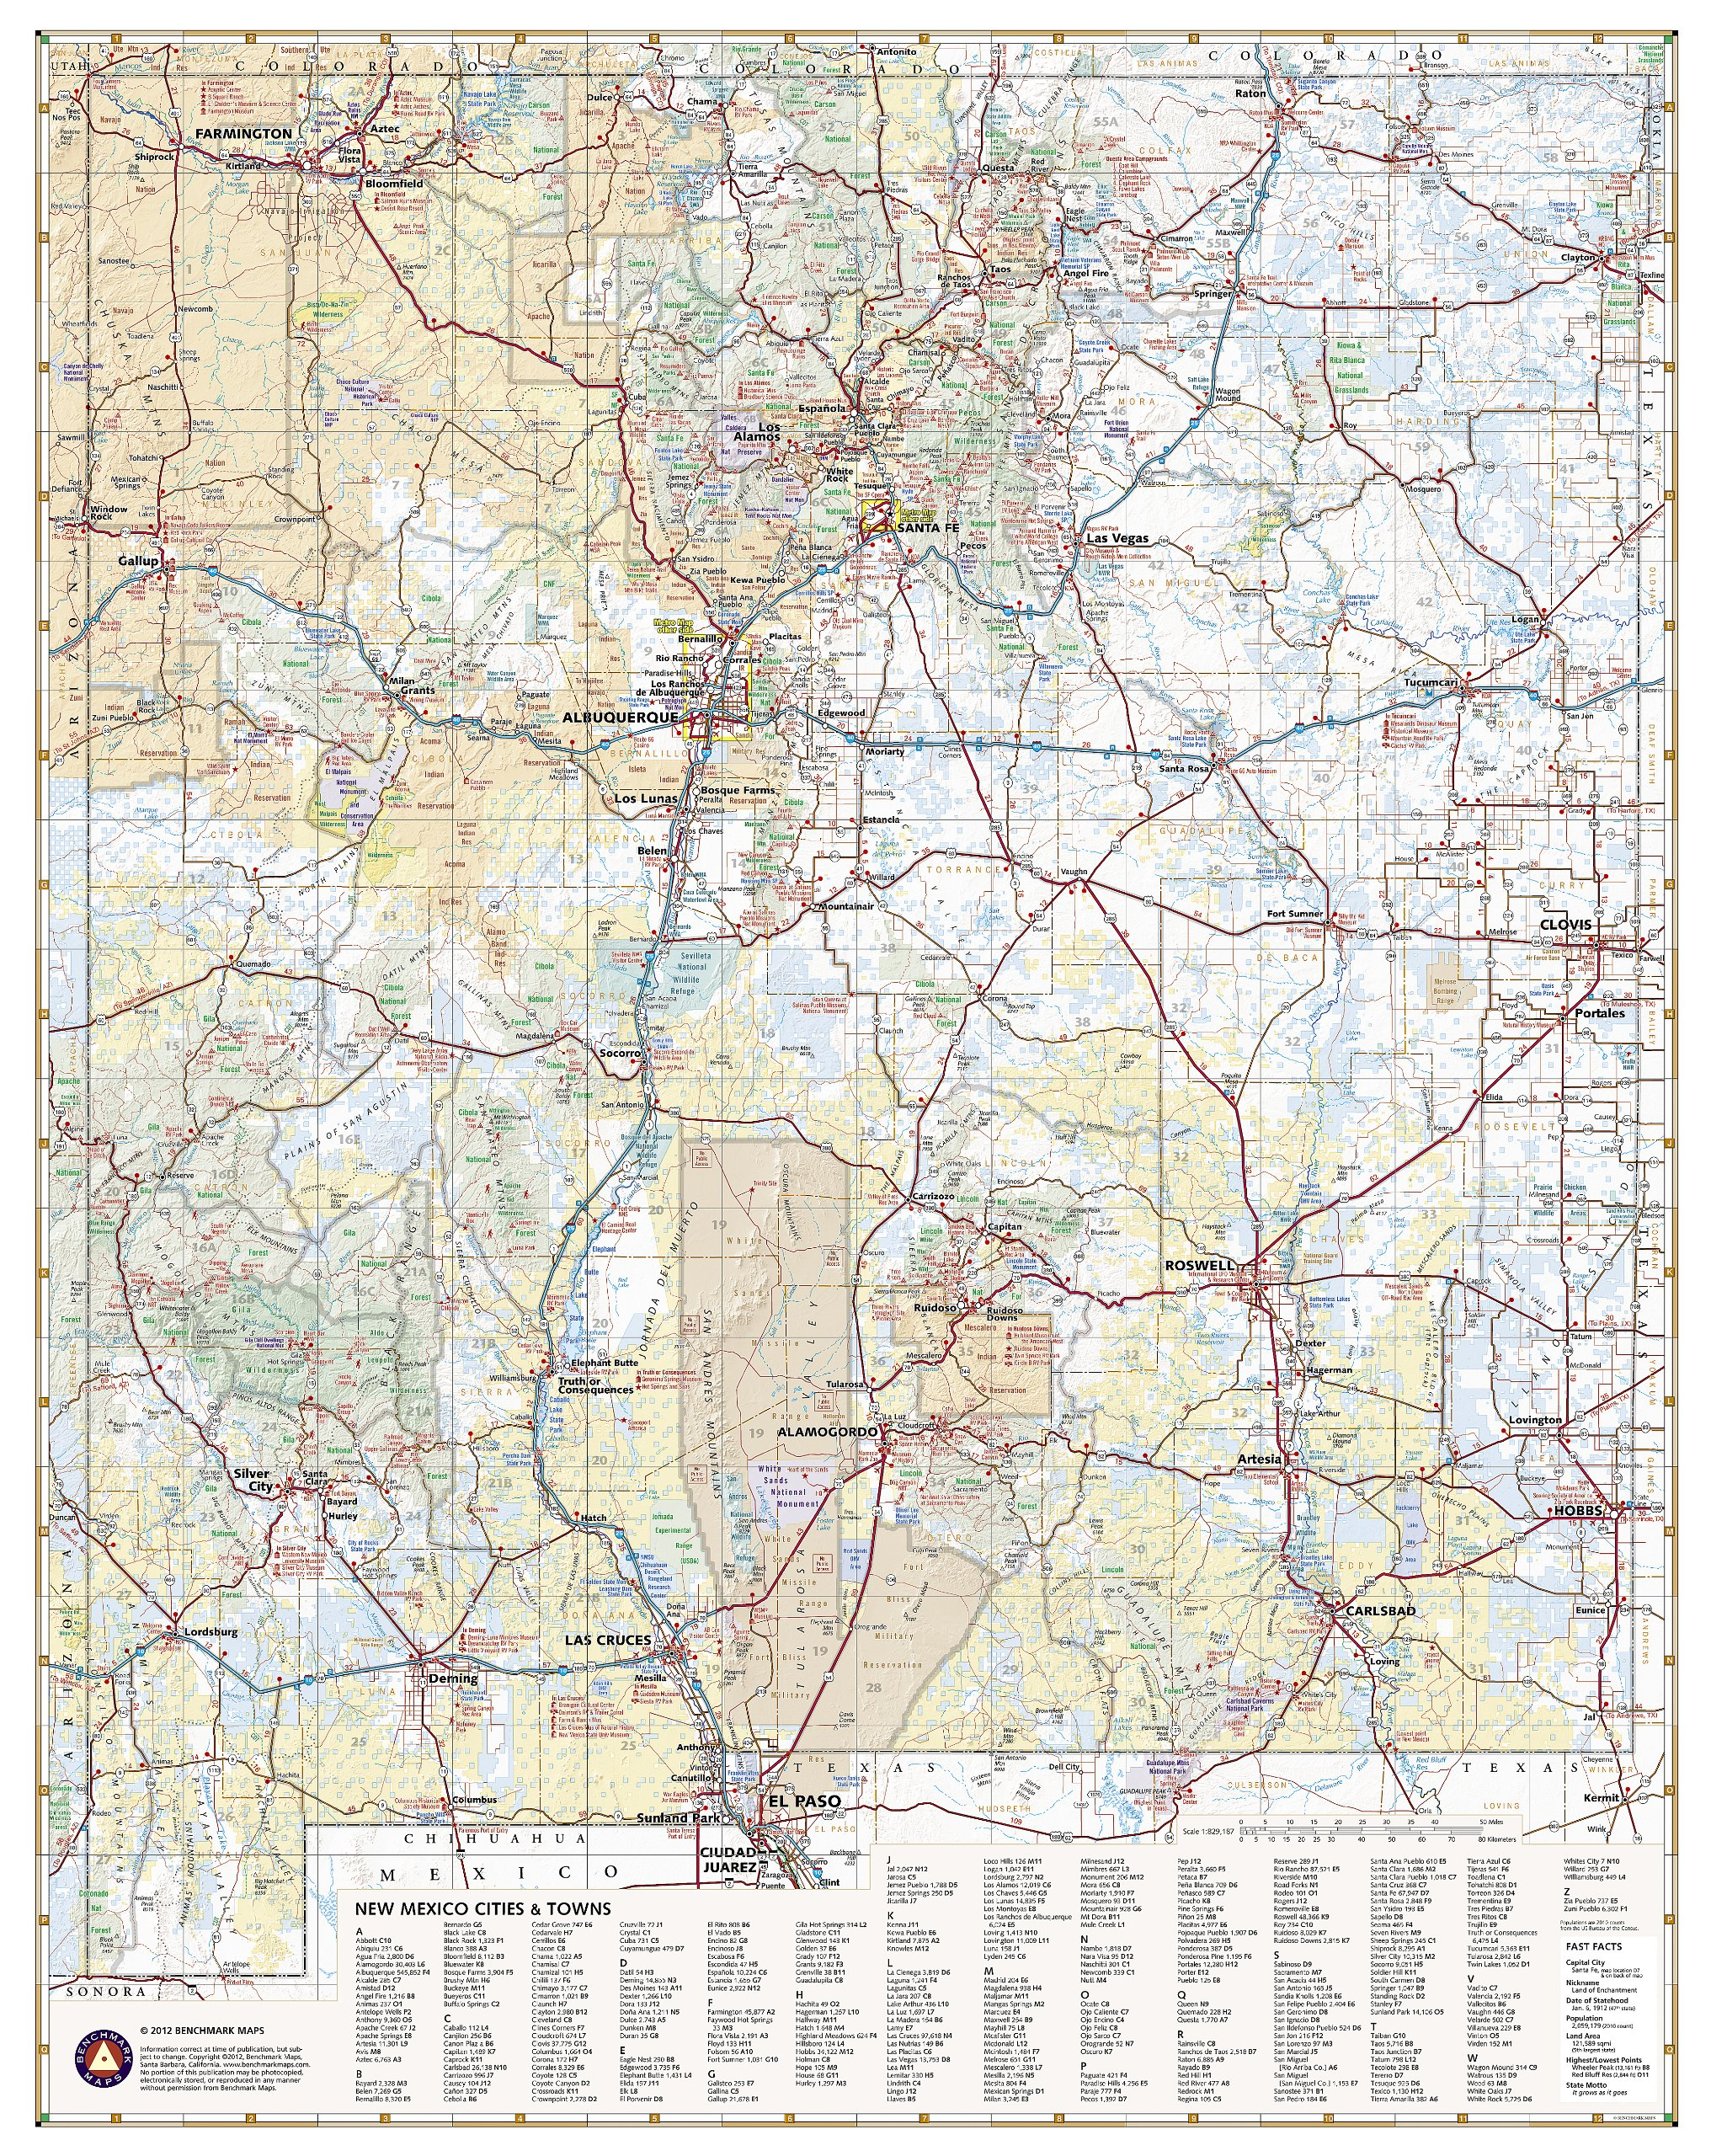 New Mexico Recreation Map: Benchmark Maps: 0767020000594: Amazon.com ...